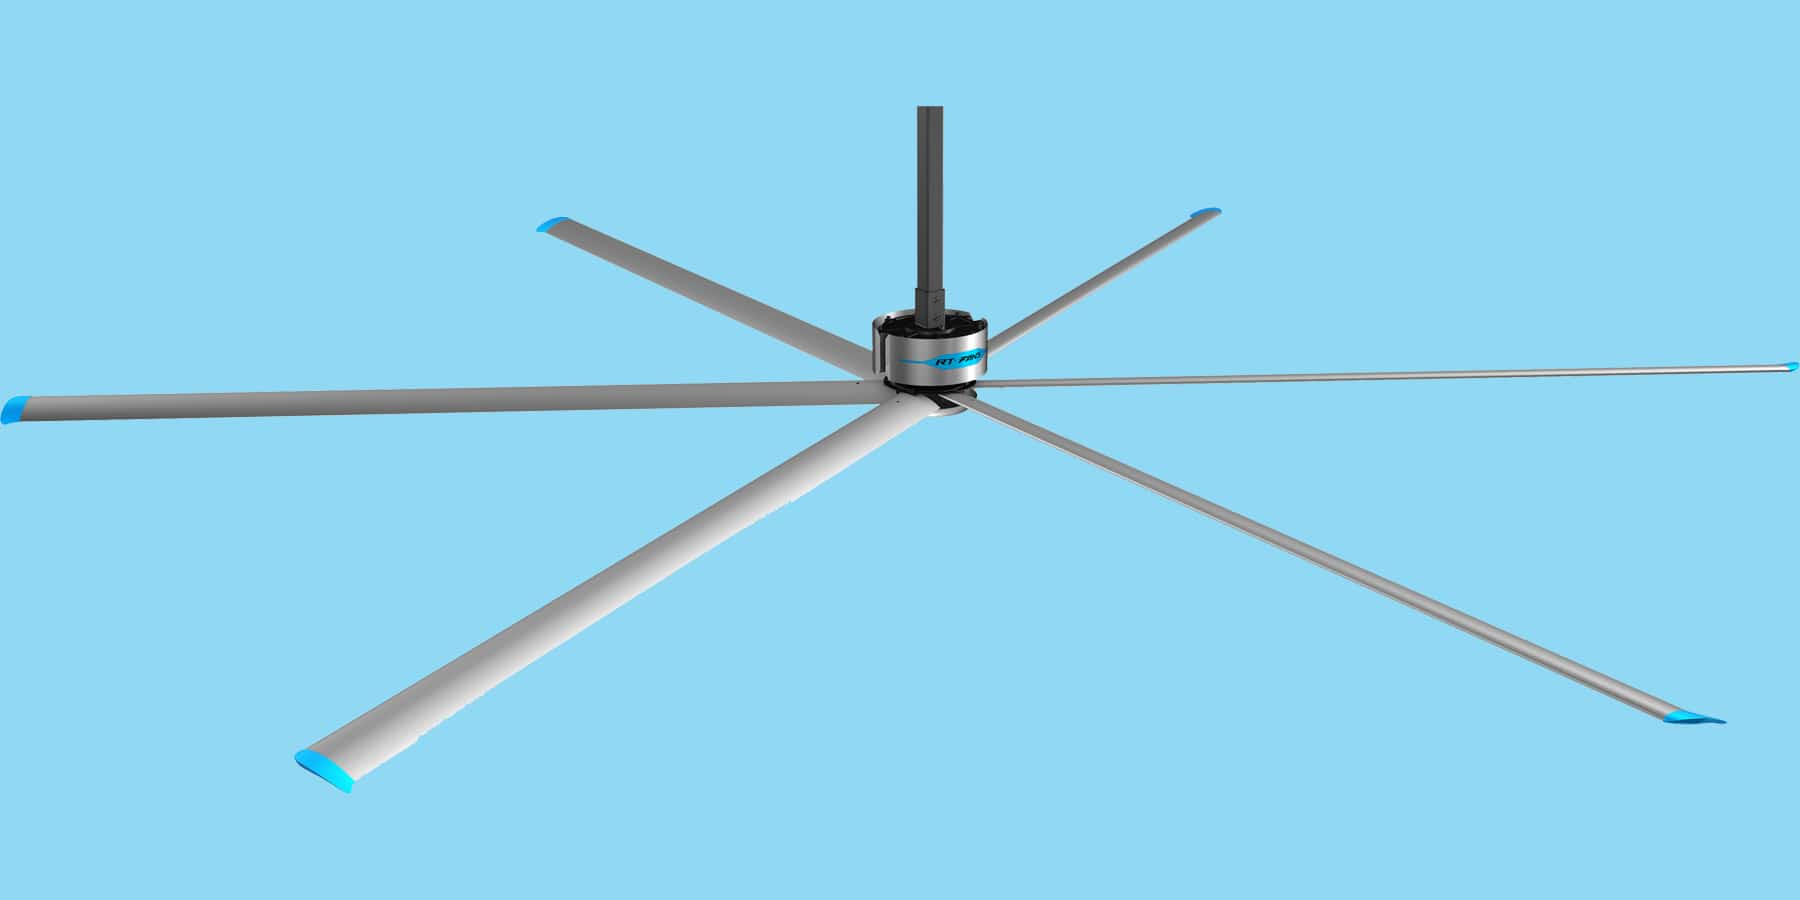 pmsm fan used for large spaces 01 min